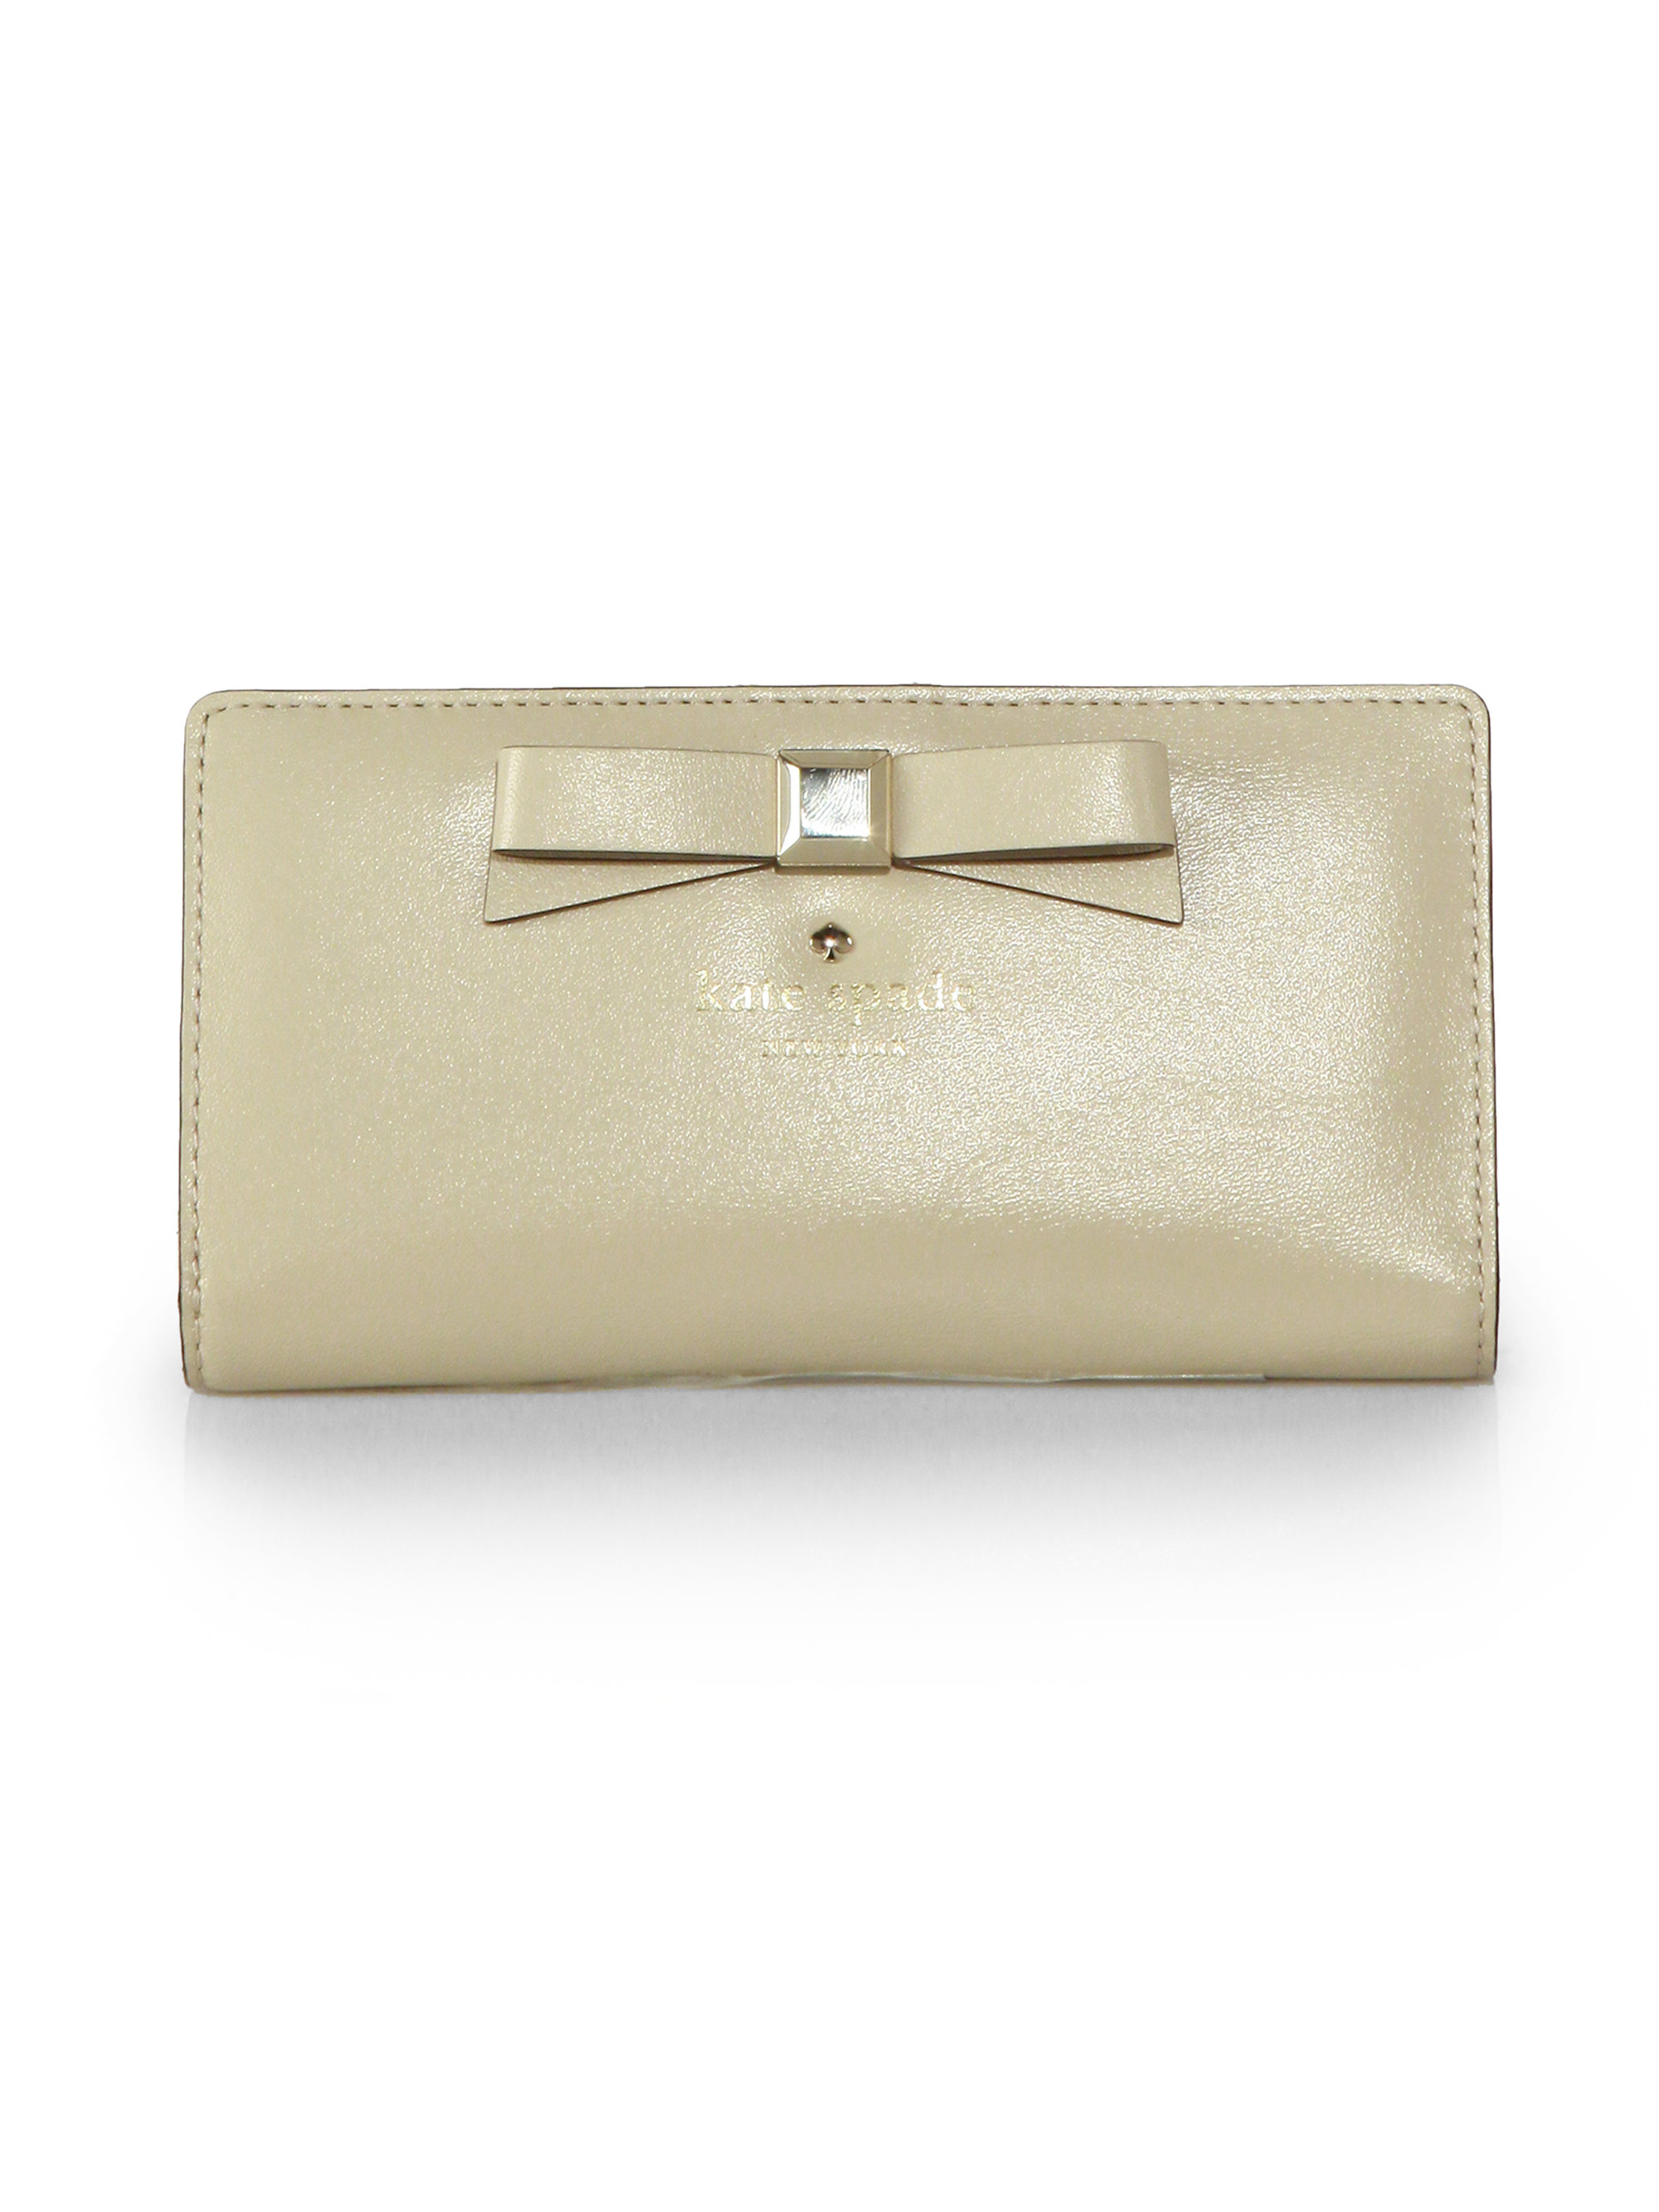 cd97cb263c4c Lyst - Kate Spade Holly Street Stacy Continental Wallet in Metallic